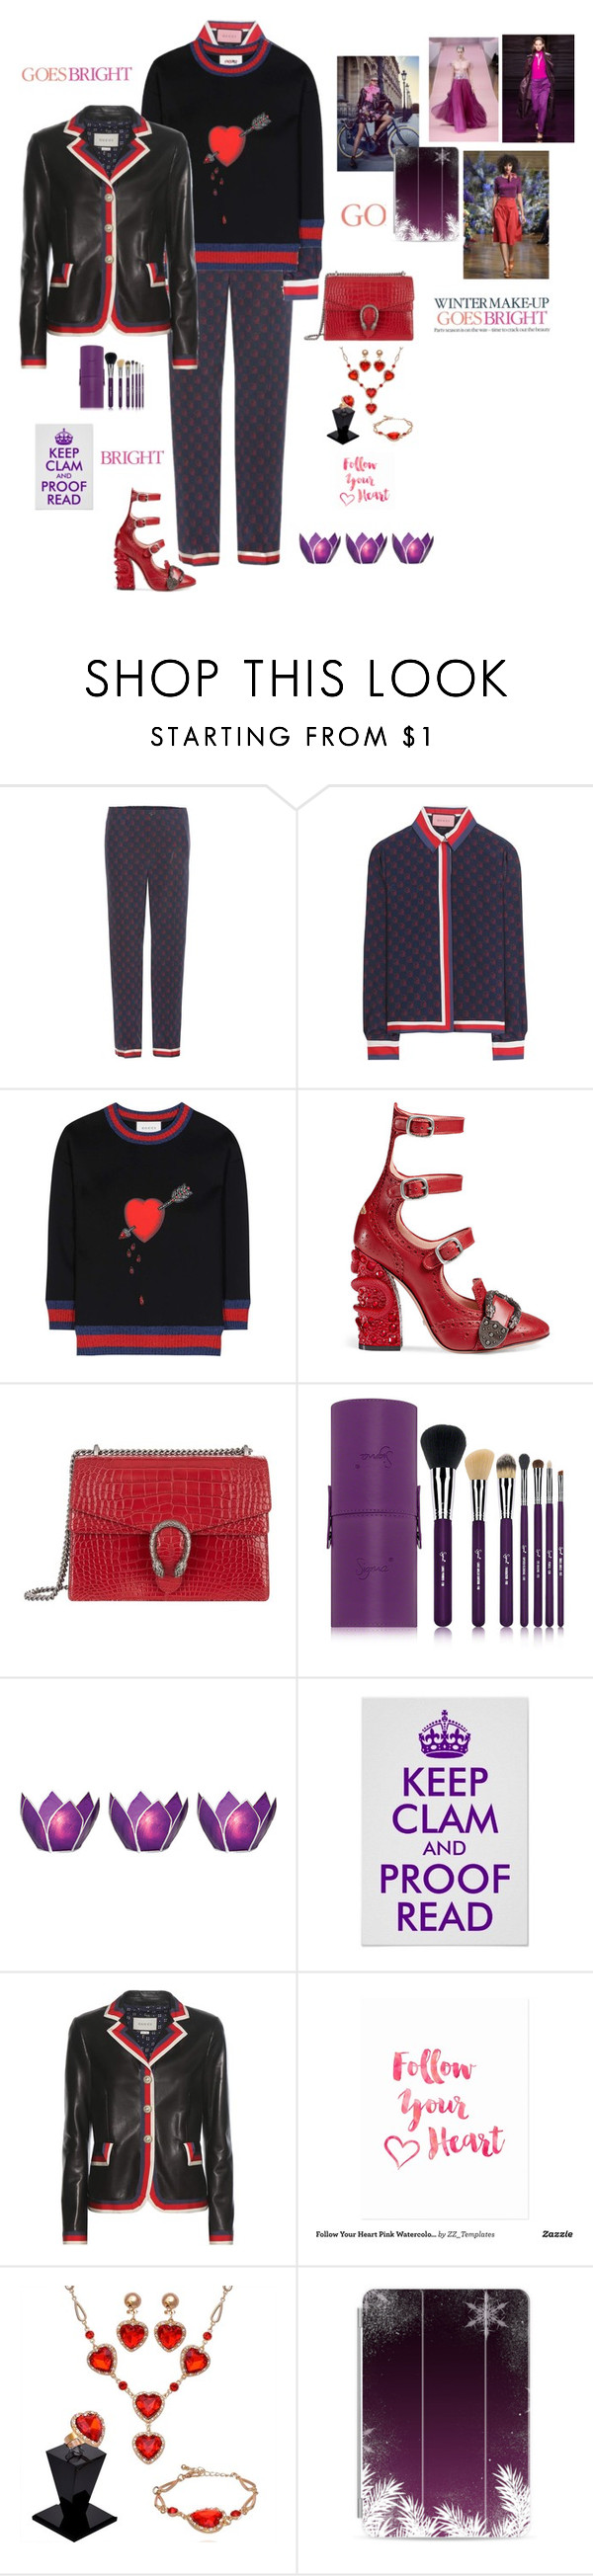 """""""Silk suit"""" by mbarbosa ❤ liked on Polyvore featuring Gucci, Sigma, Cultural Intrigue, Burton, Casetify, Vanessa Seward, Nina Ricci and Celestine"""